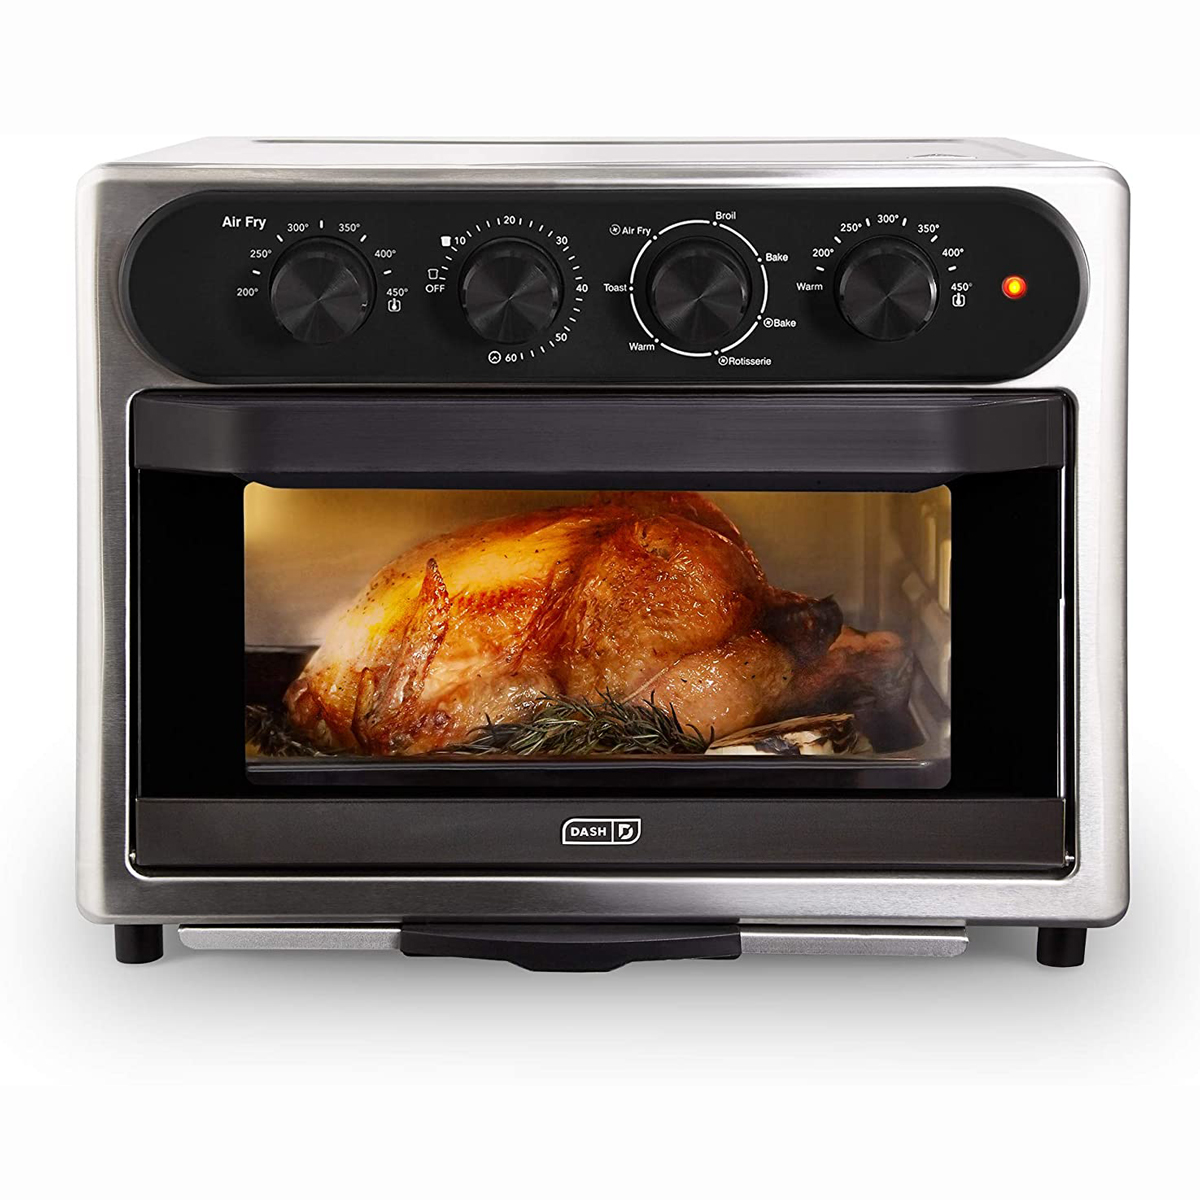 prime day air fryer deals dash oven